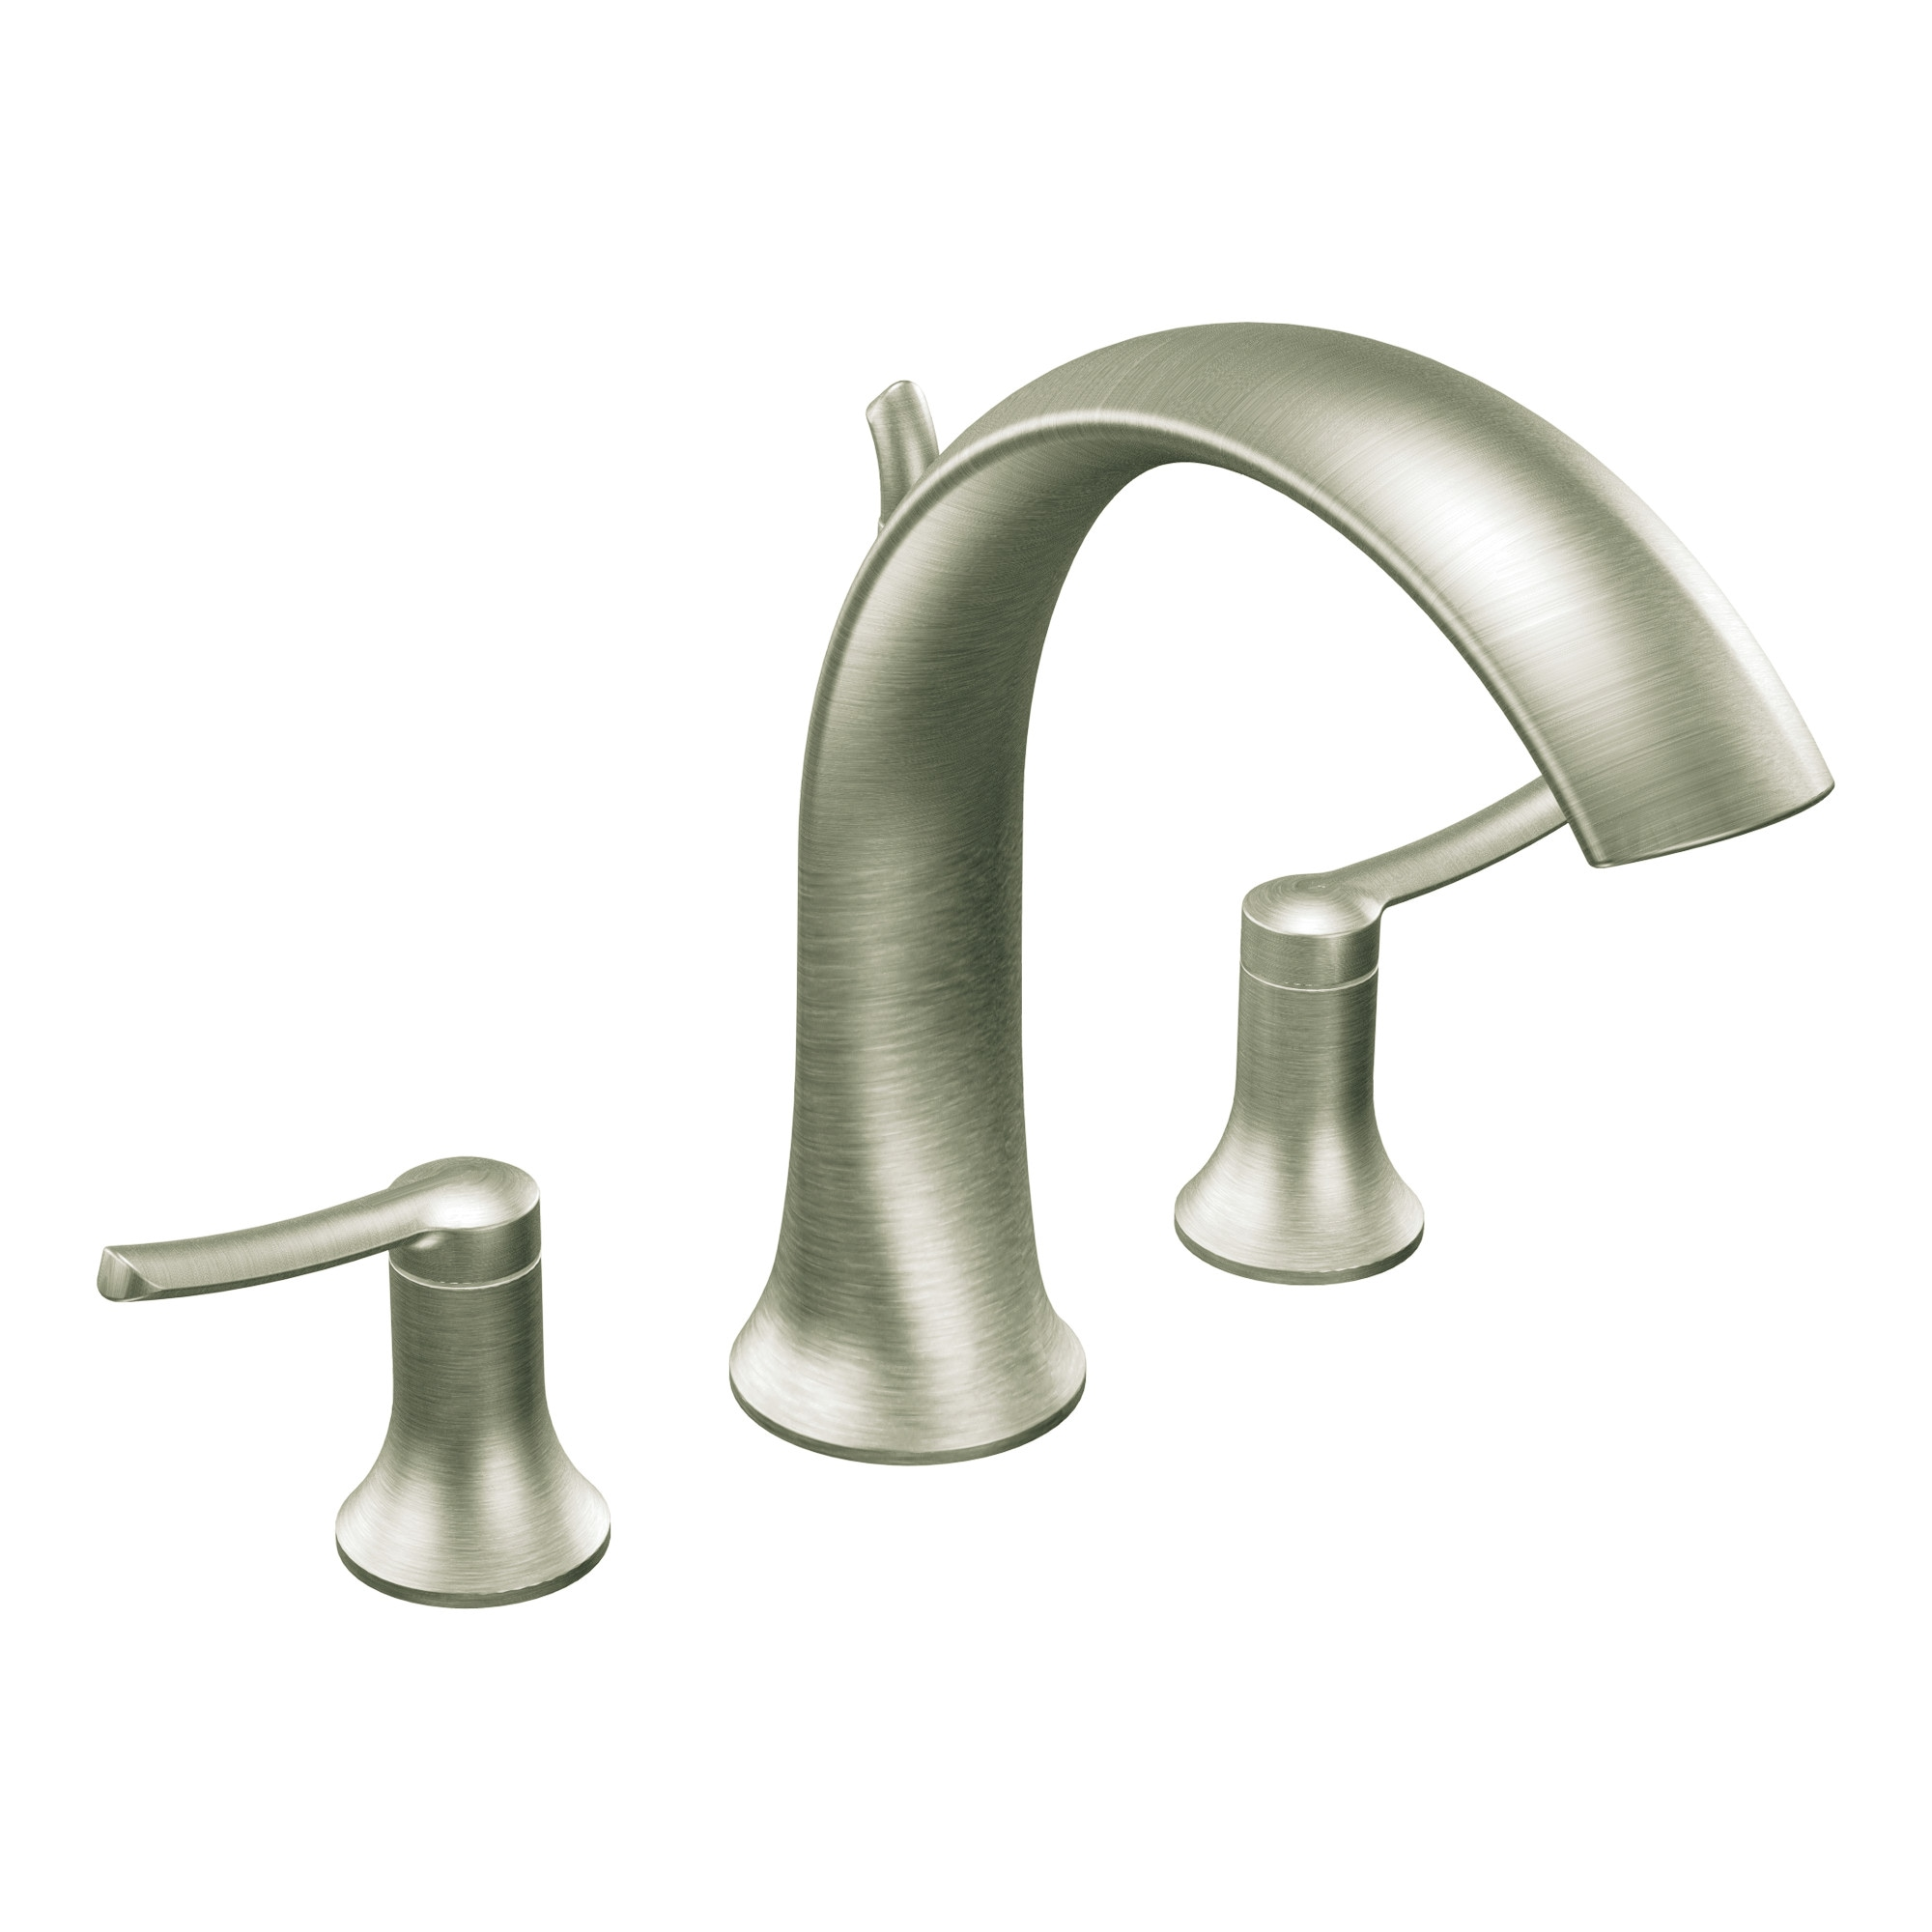 Faucet Handle : Moen Faucets Related Keywords & Suggestions - Moen Faucets Long Tail ...